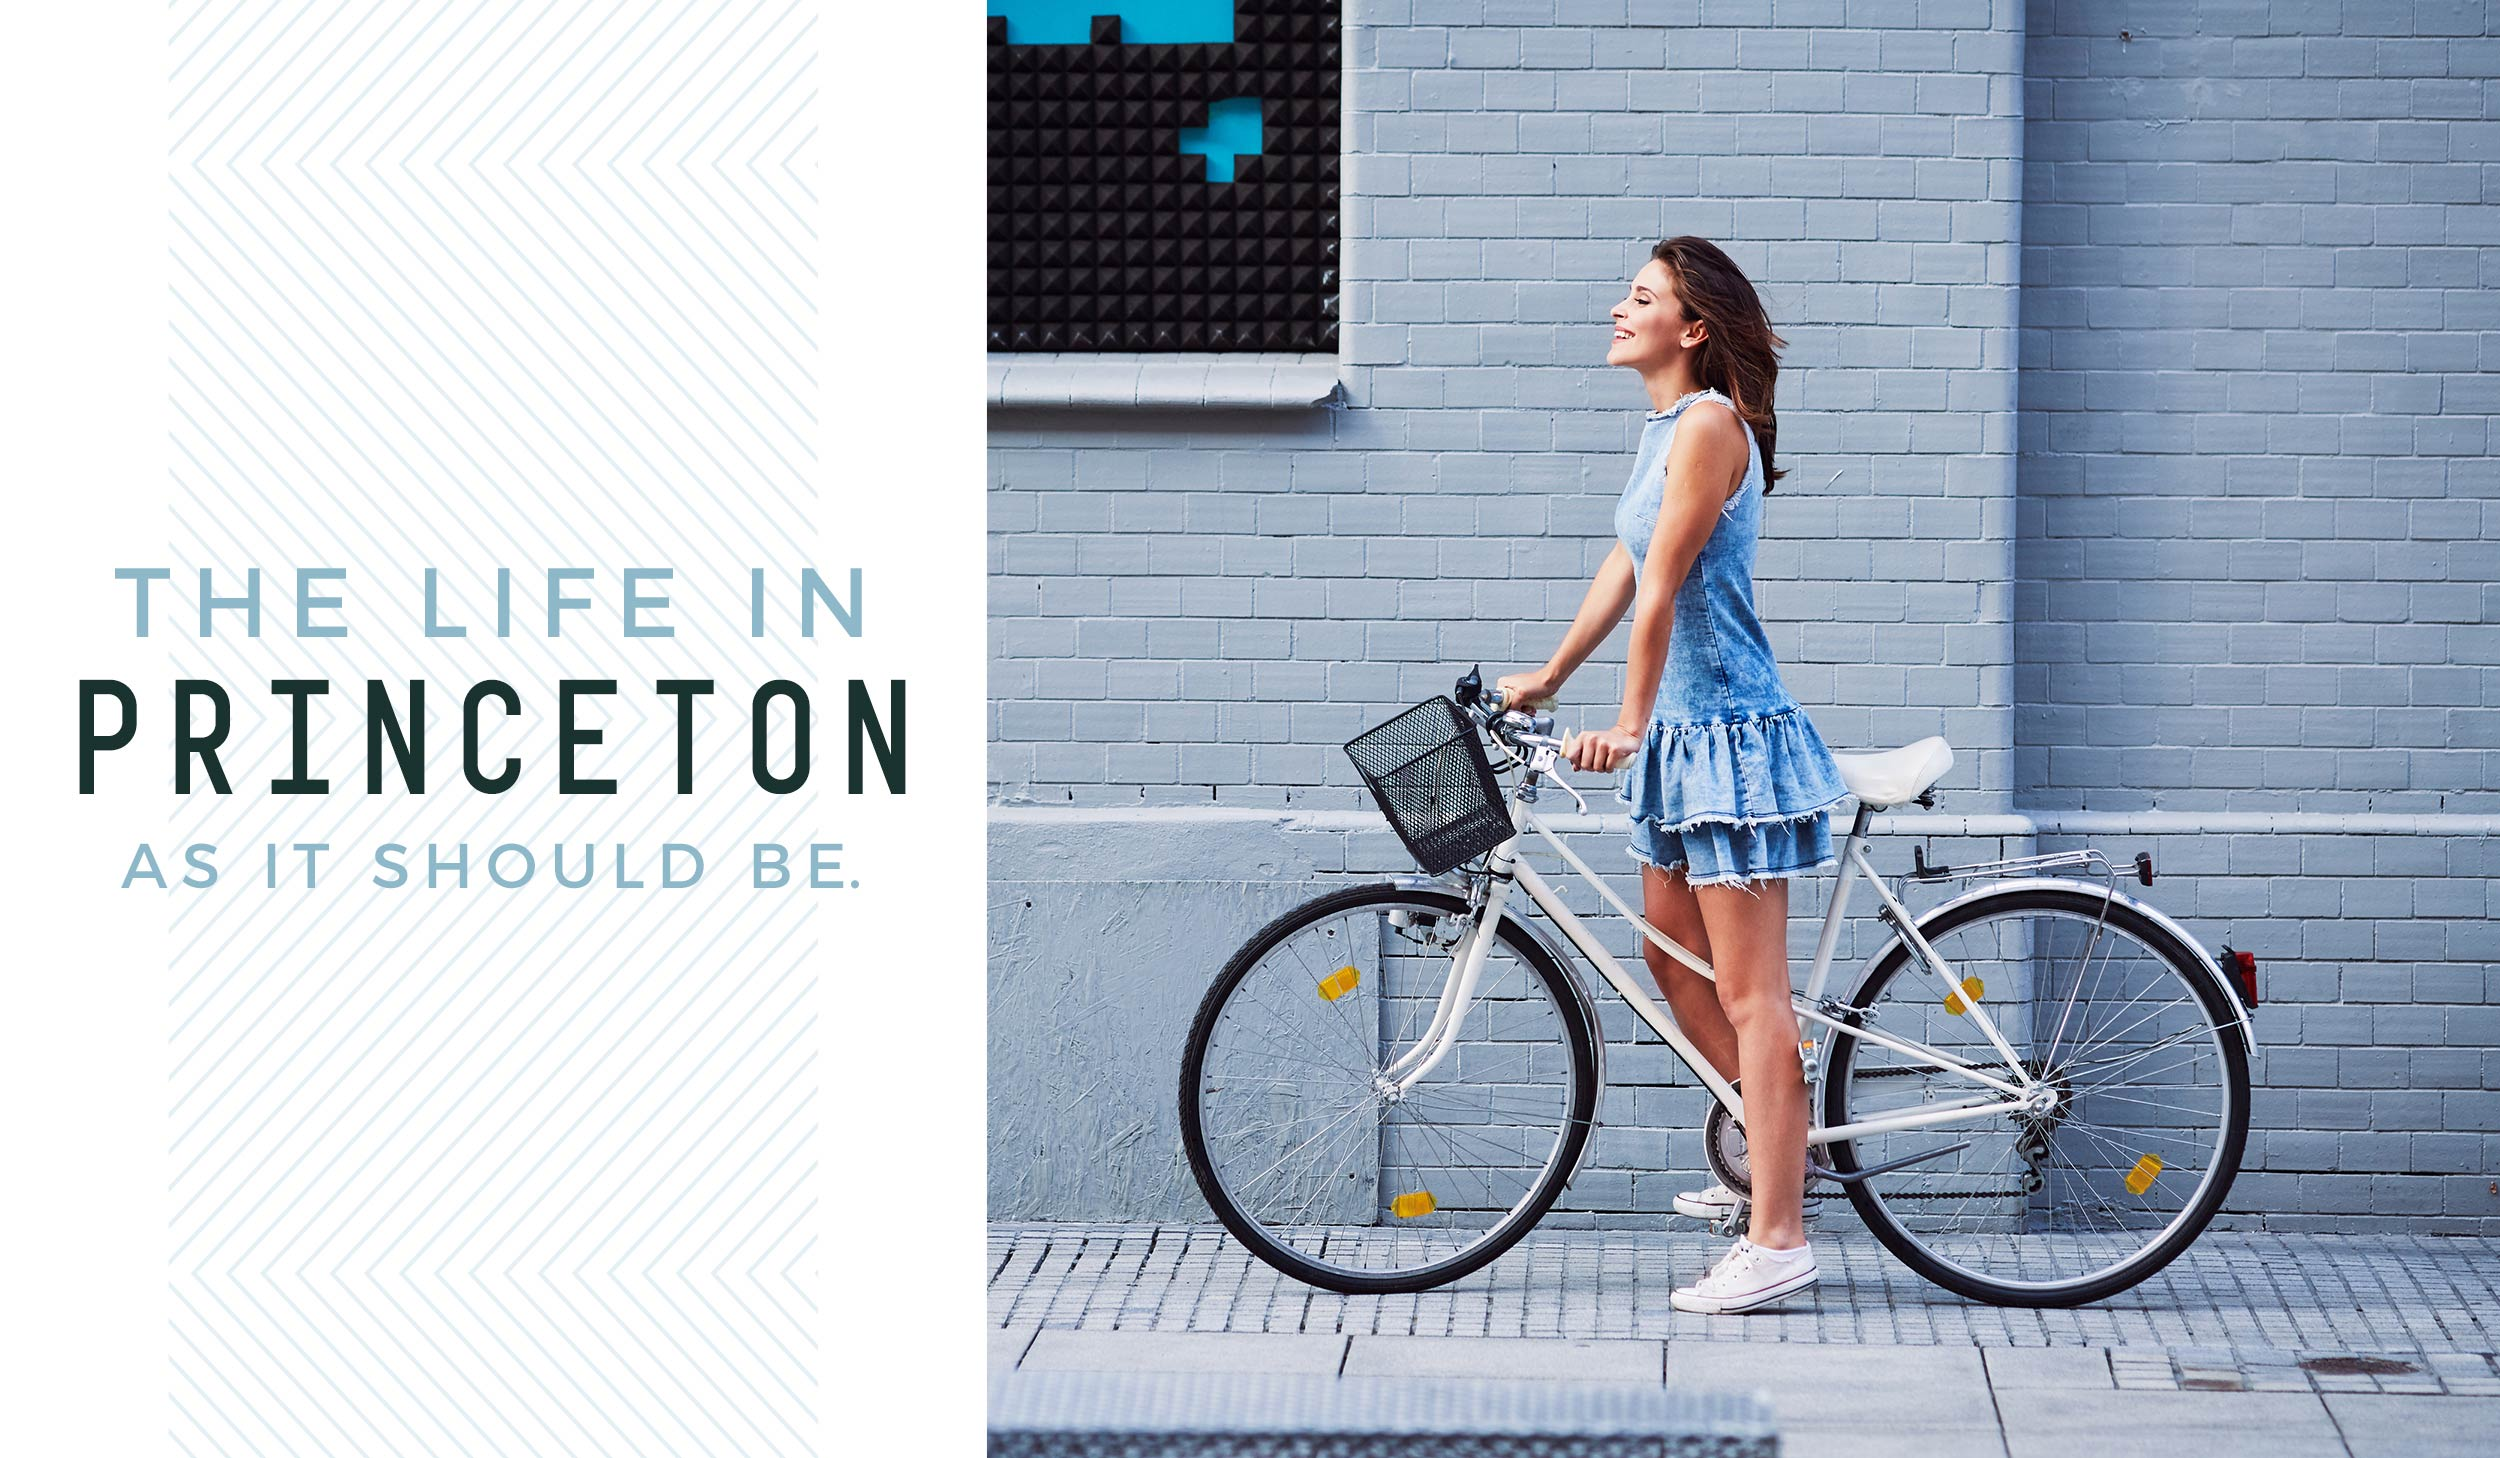 A woman riding a bike with text THE LIFE IN PRINCETON AS IT SHOULD BE.